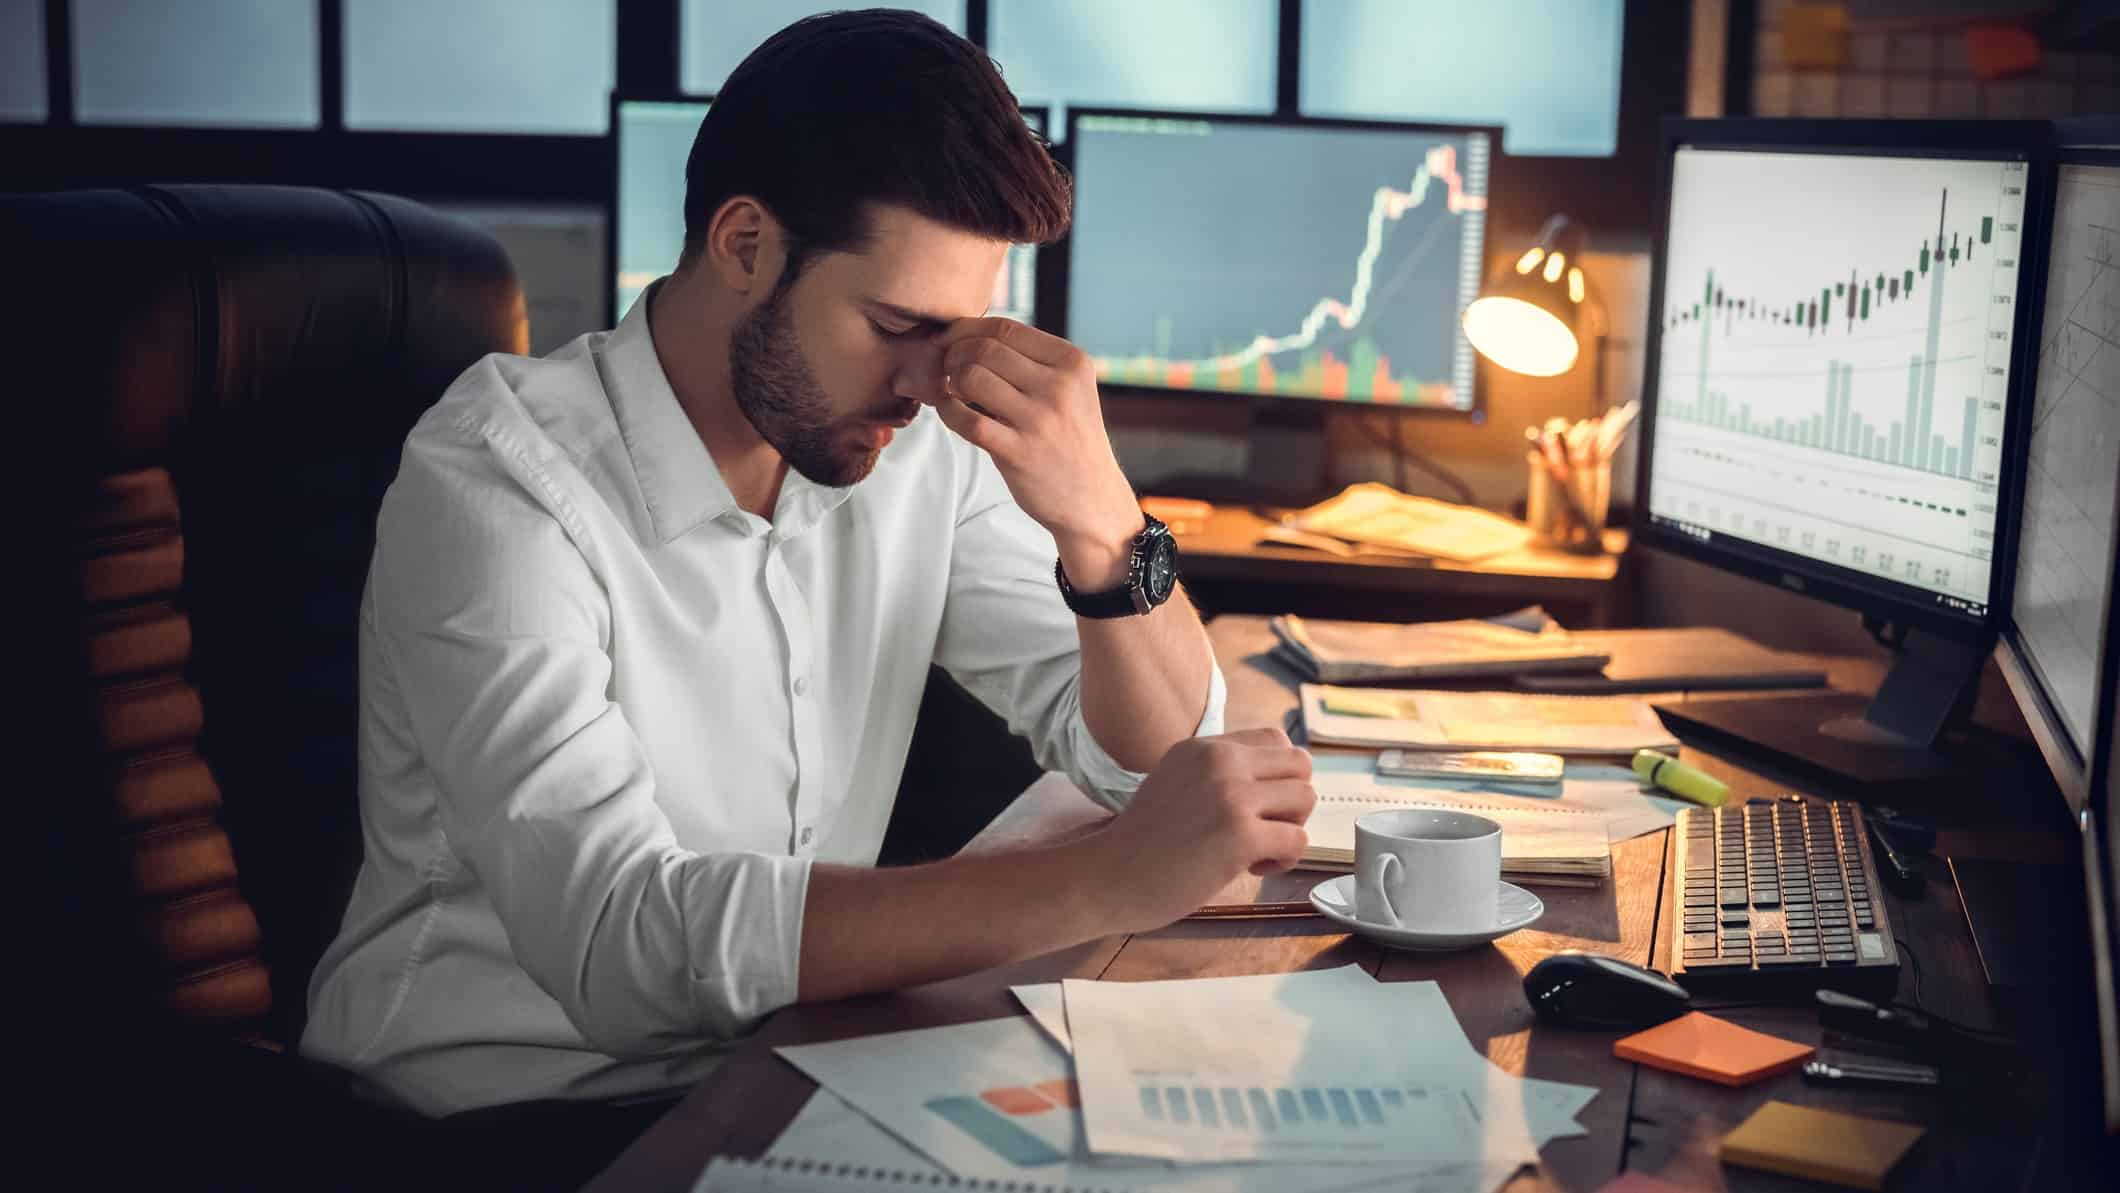 businessman sitting at desk with head in hands in front of computer screens with falling financial charts, asx recession